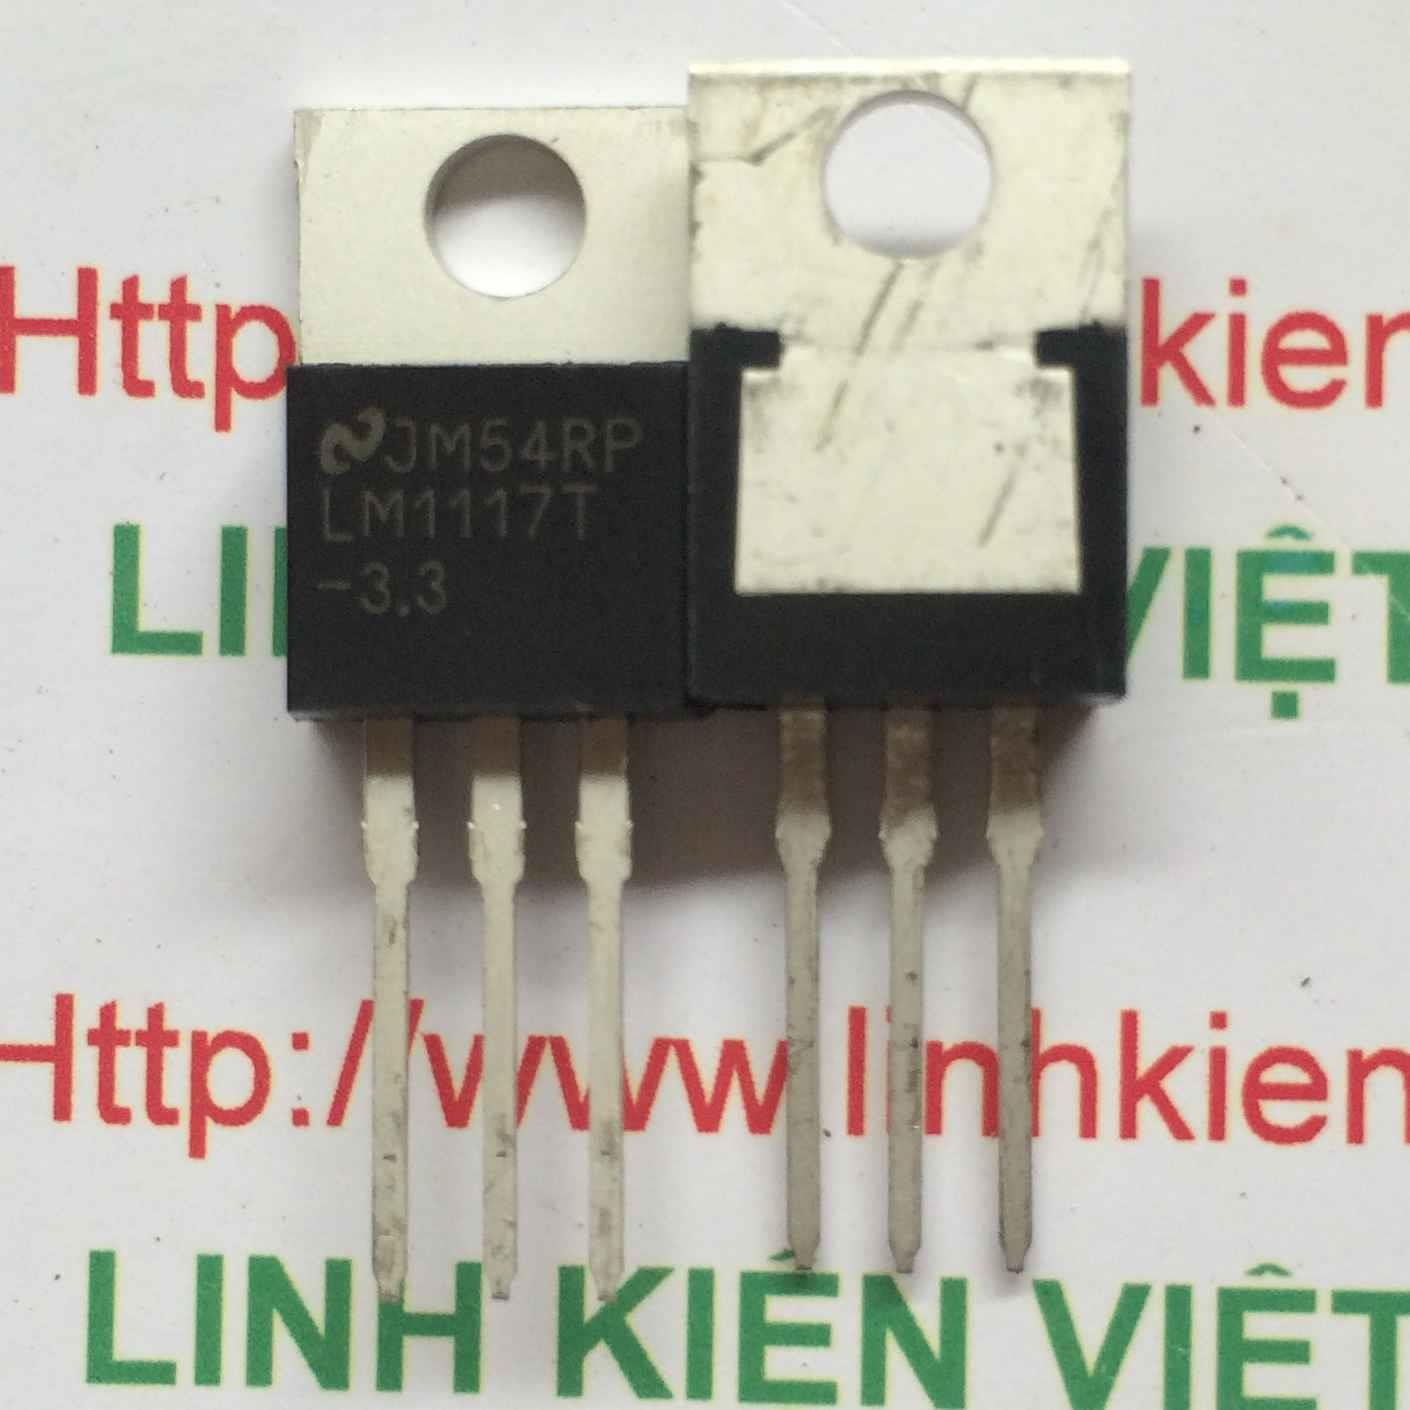 LM1117T 3.3V TO220 - B4H6